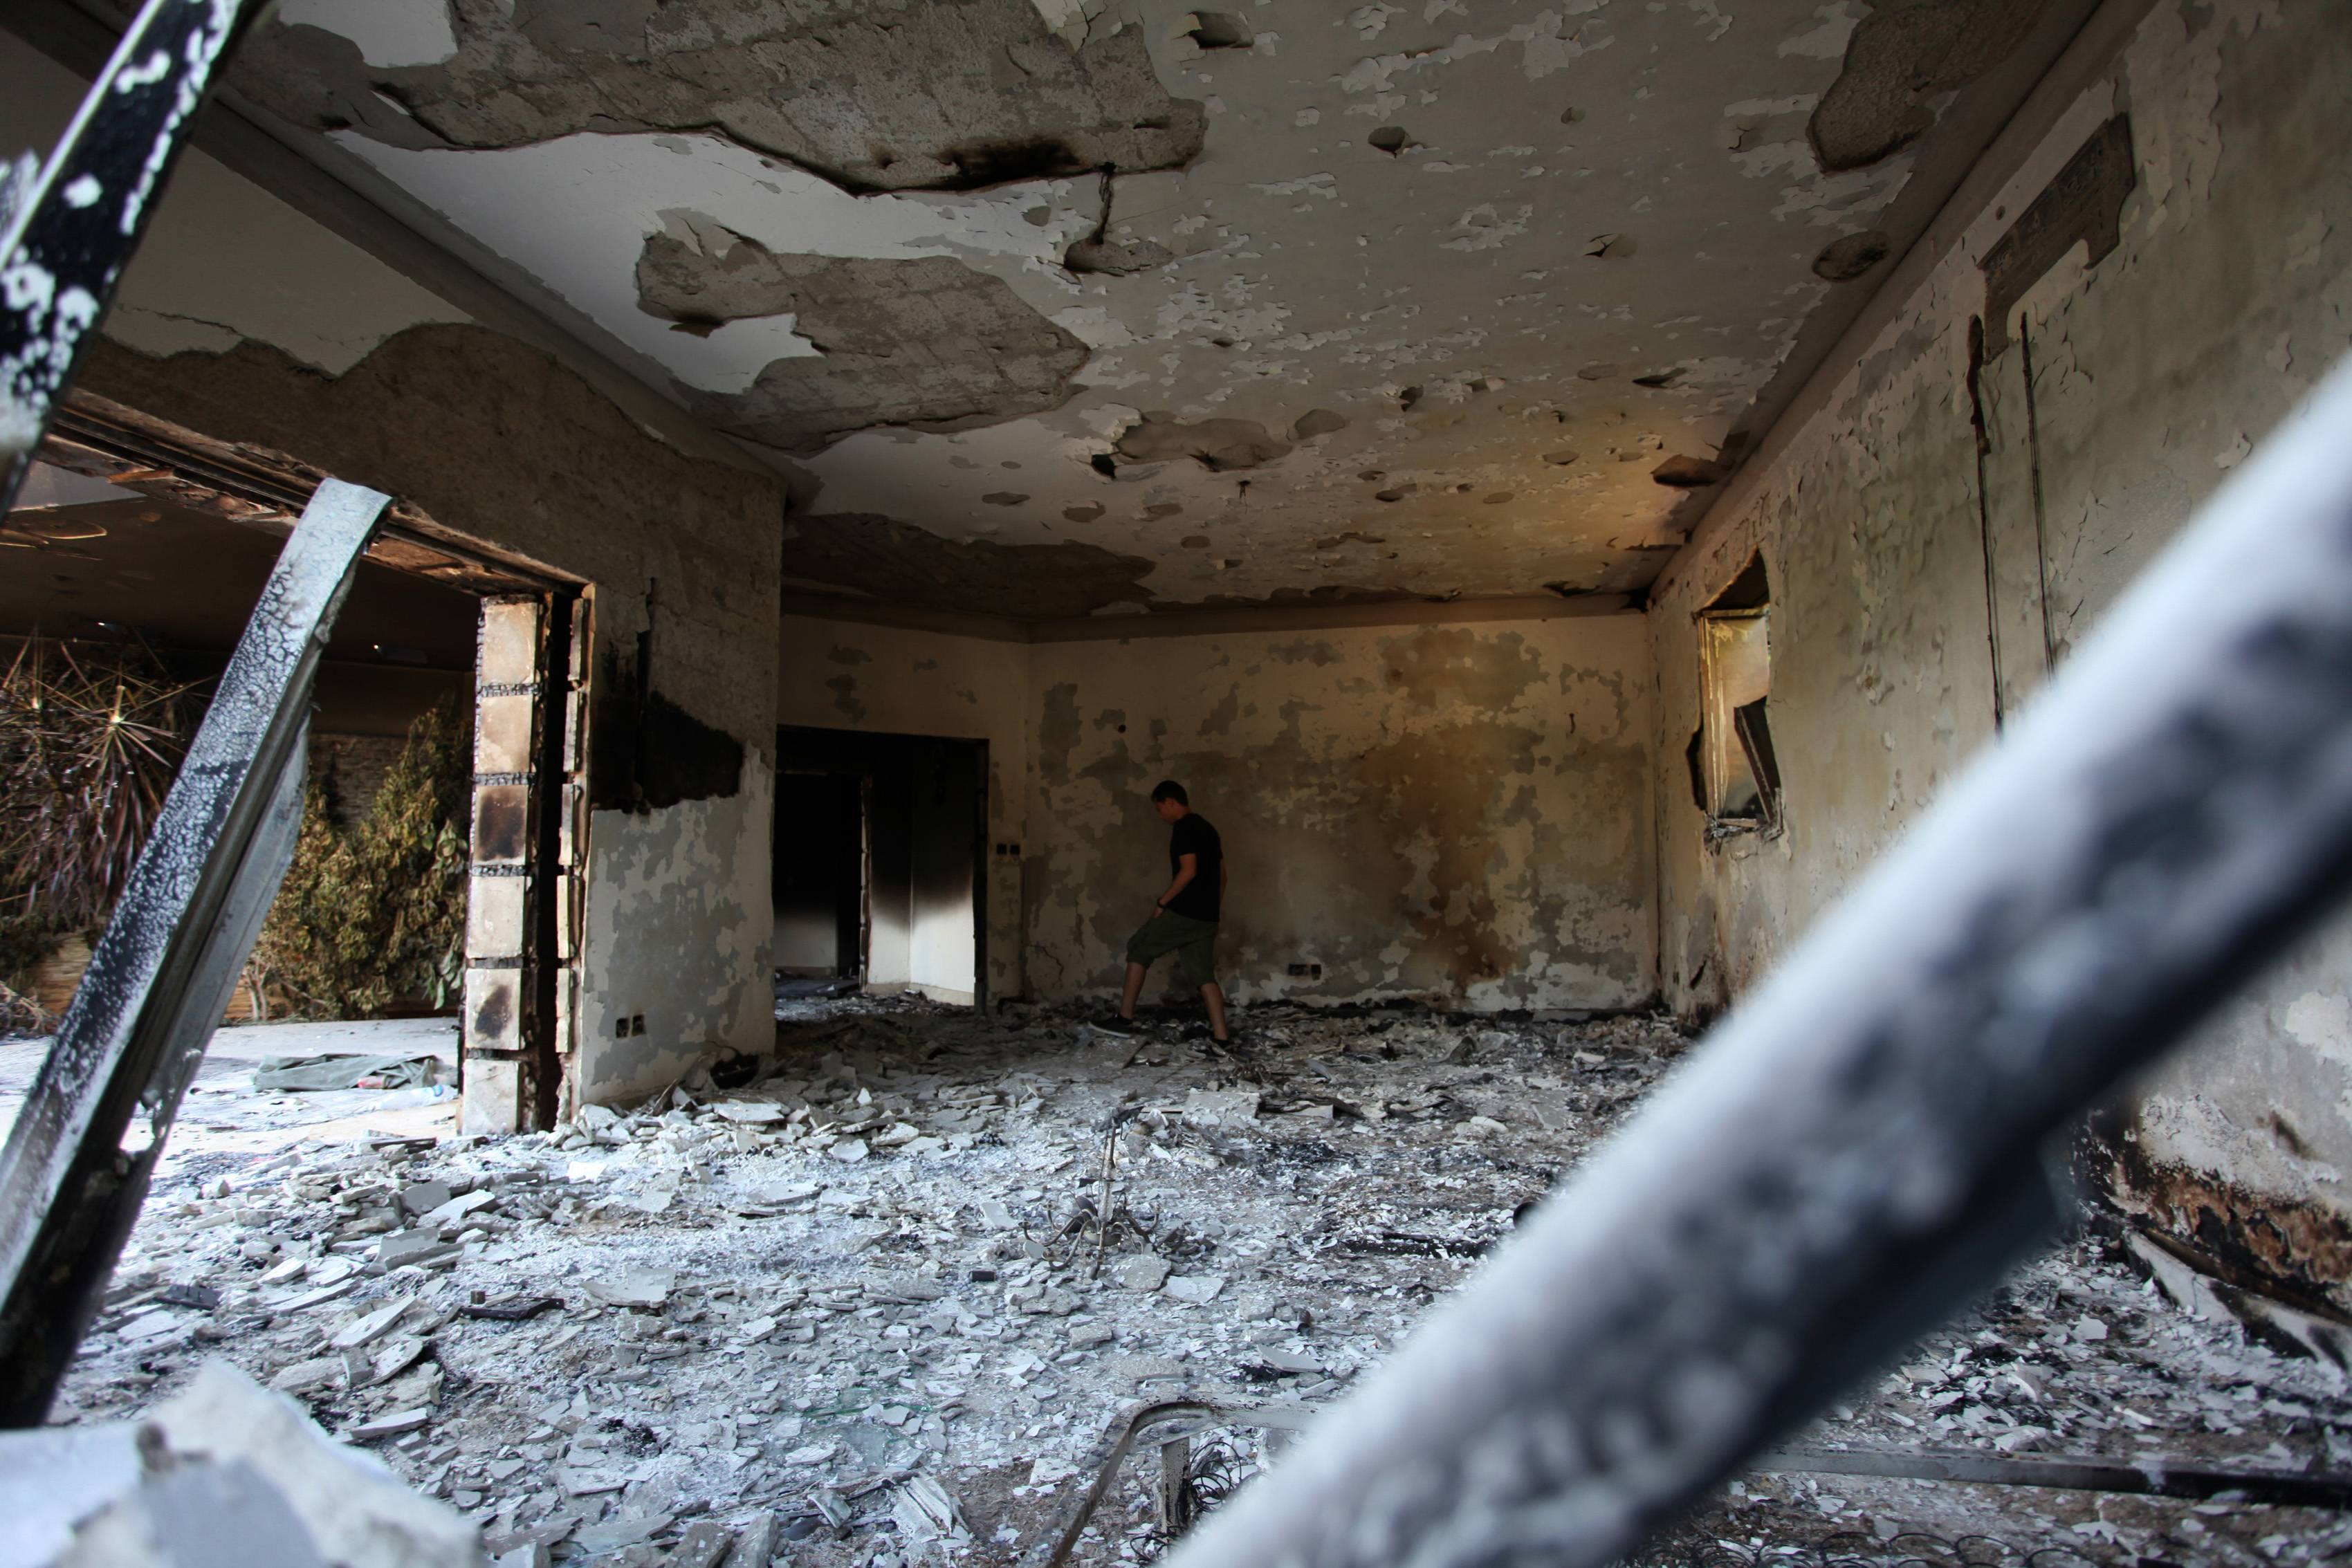 2012 Benghazi attacks  back at center of debate